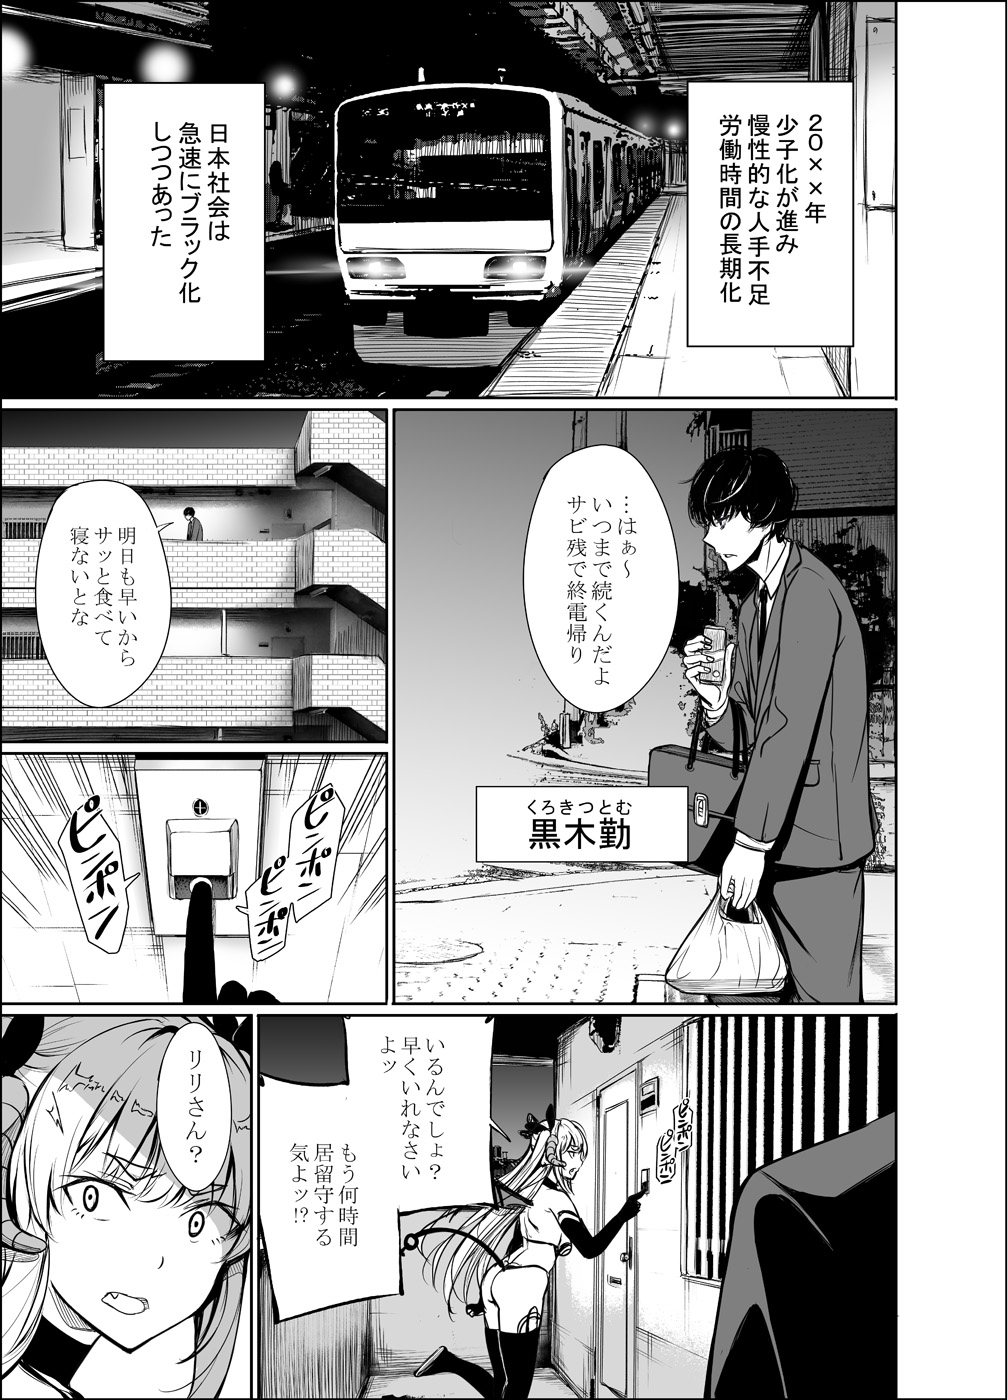 1boy 1girl bag boots briefcase can comic commentary demon_girl demon_horns demon_tail demon_wings doorbell eyebrows_visible_through_hair fang formal gentsuki greyscale ground_vehicle highres holding holding_bag holding_can horns kuroki_tsutomu lily_(gentsuki) monochrome necktie original plastic_bag pointy_ears revealing_clothes salaryman speech_bubble subway succubus suit tail thick_eyebrows thigh-highs thigh_boots train two_side_up wings